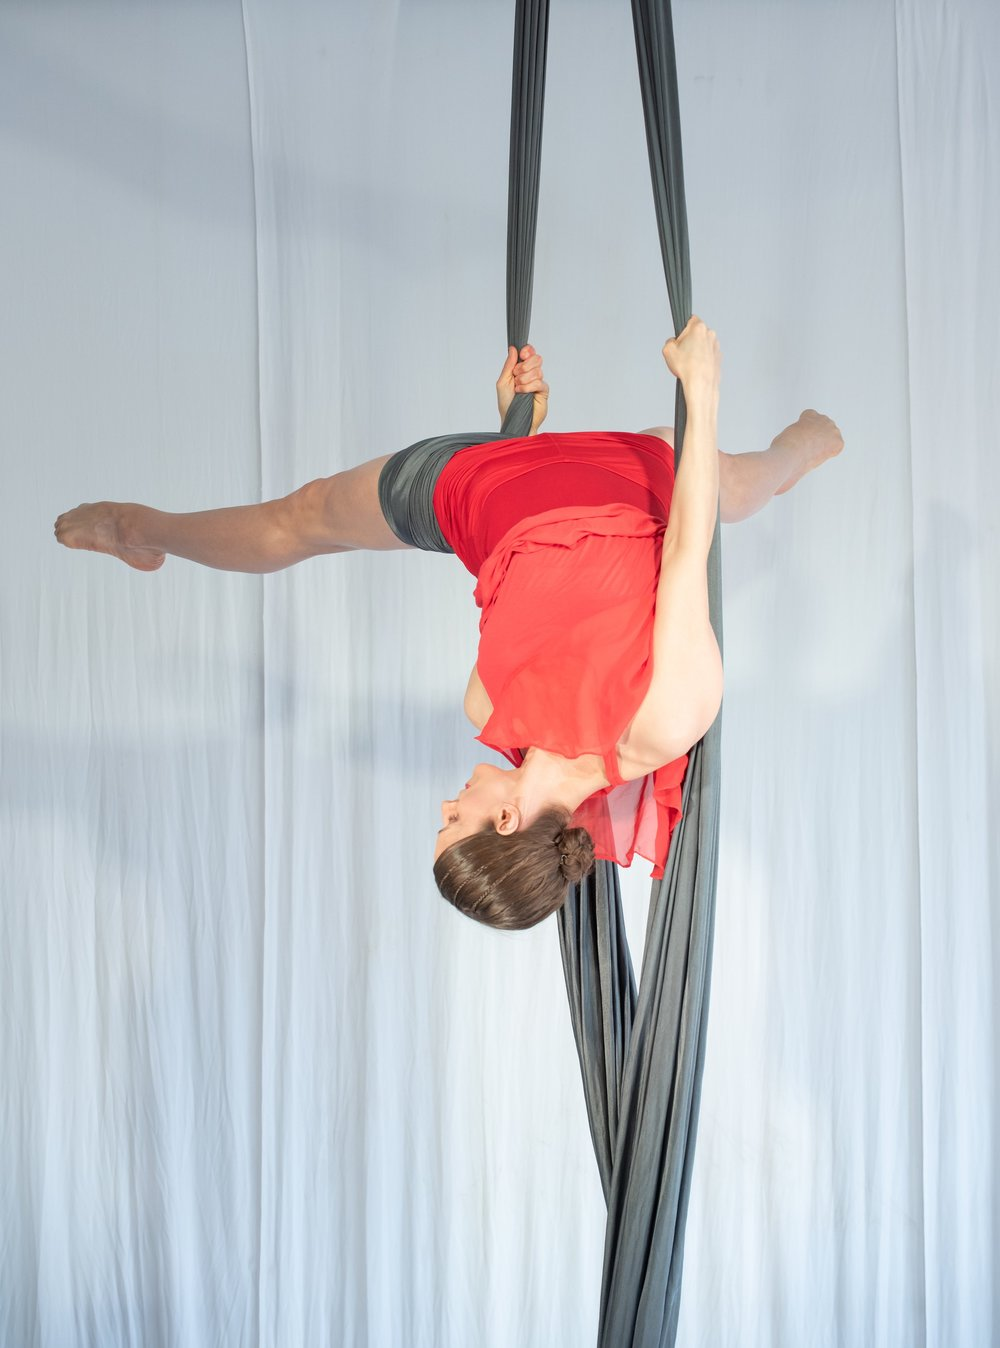 PRO FABRIC   Take your aerial practice to the next level.   Learn More